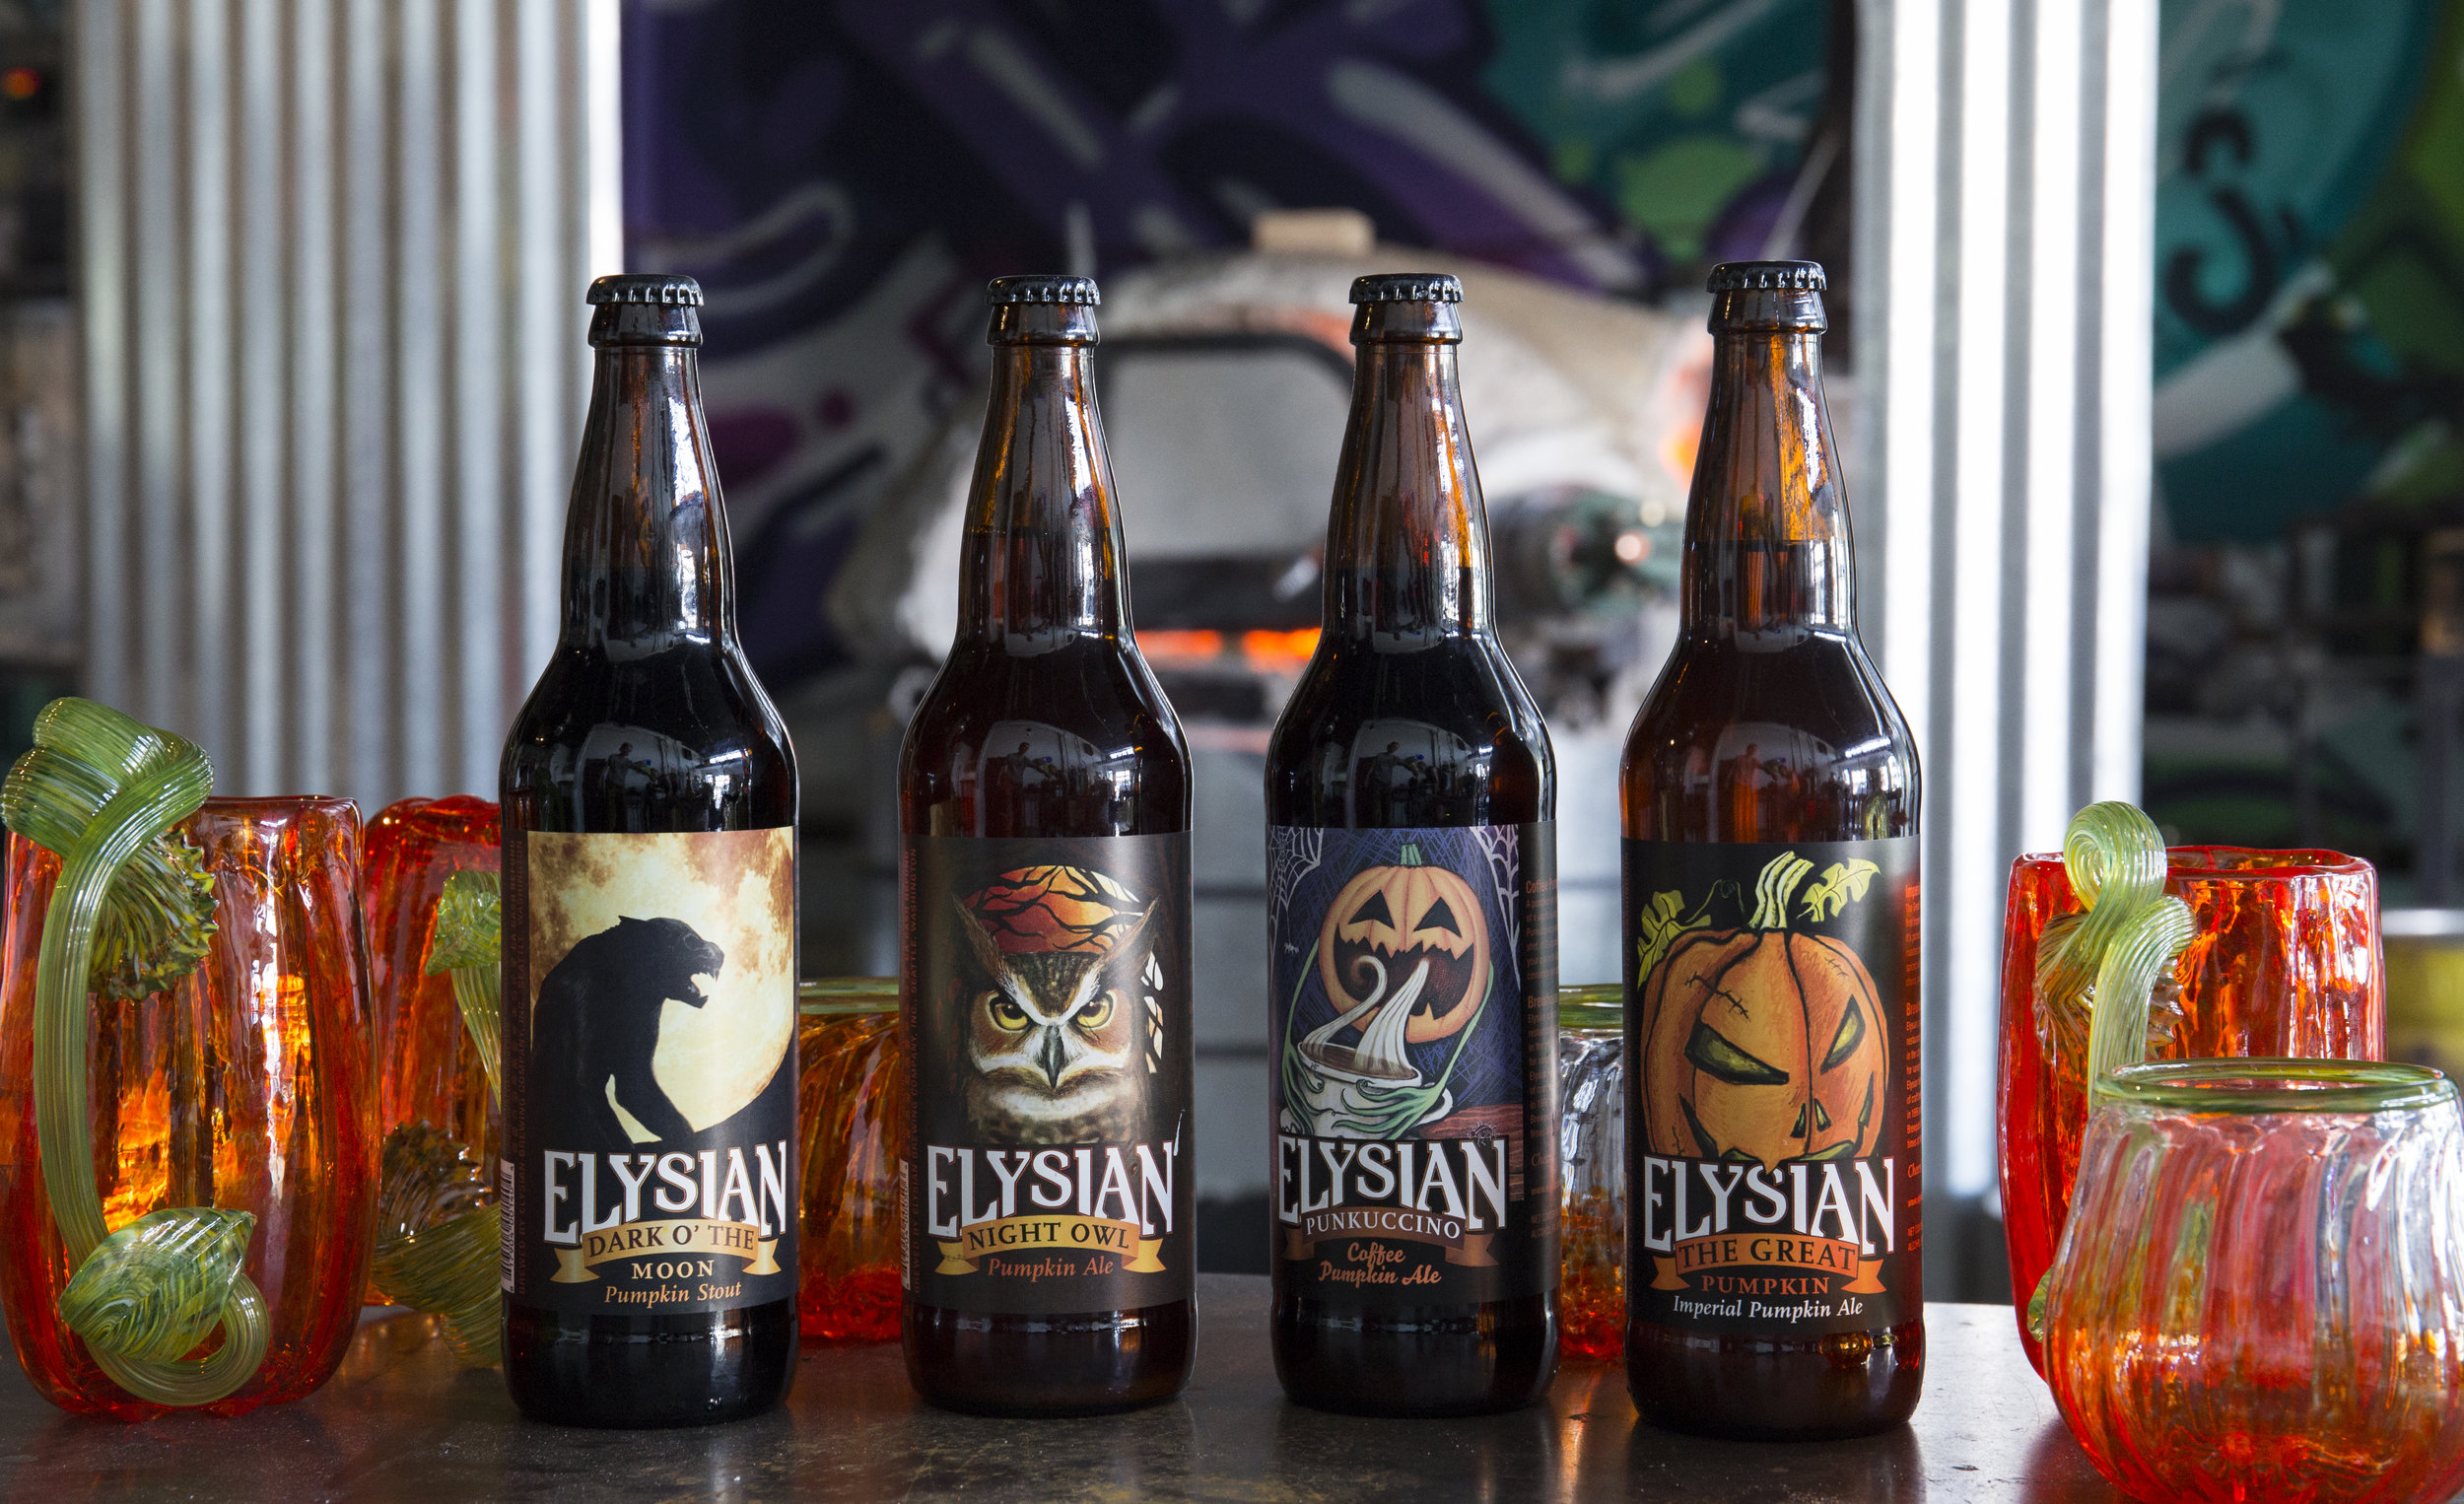 Image courtesy of Elysian Brewing used with permission.